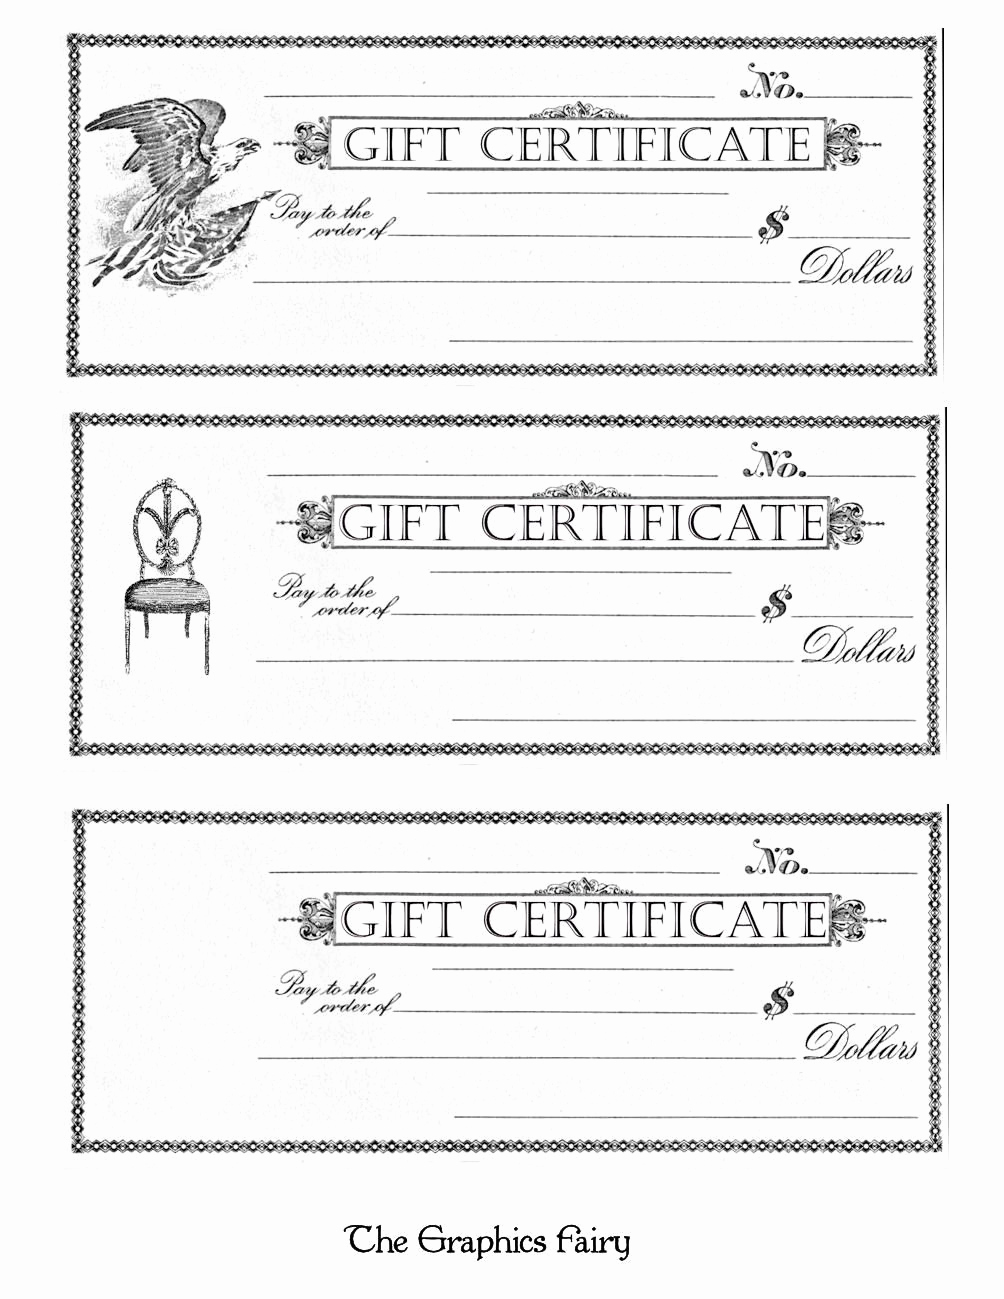 Template for Gift Certificate Luxury Free Printable Gift Certificates